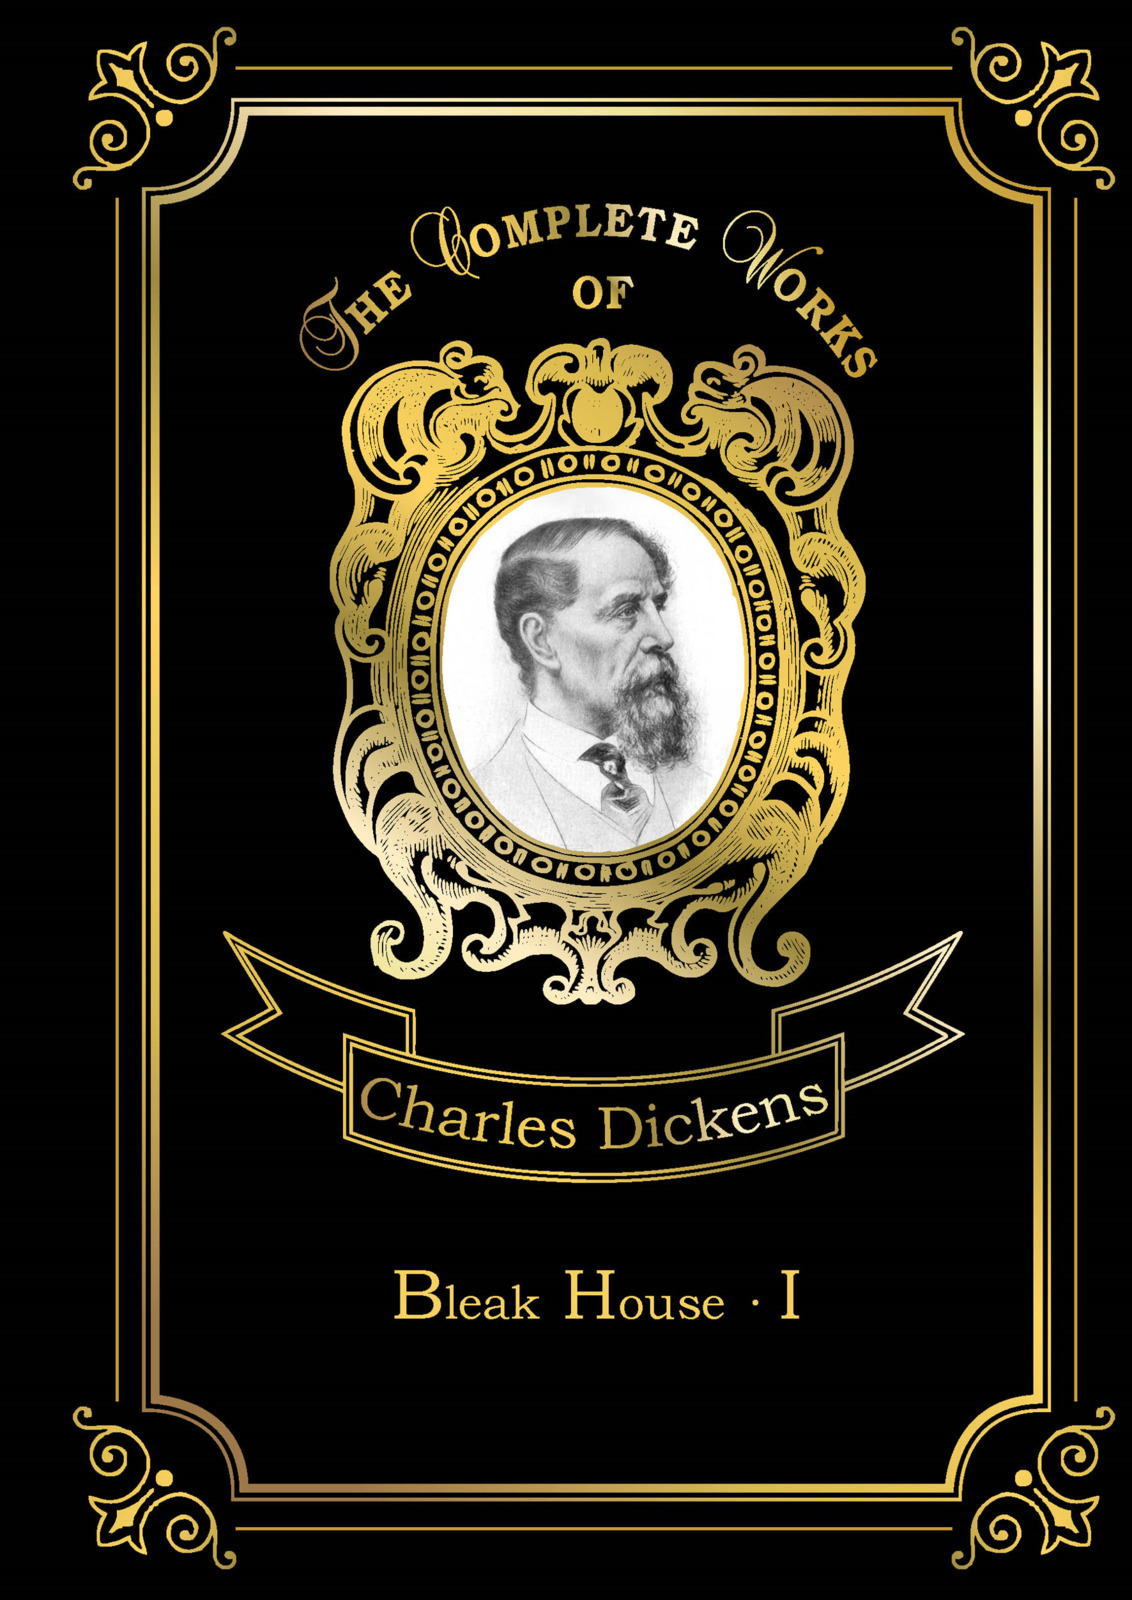 Charles Dickens Bleak House I bleak bleak burns inside